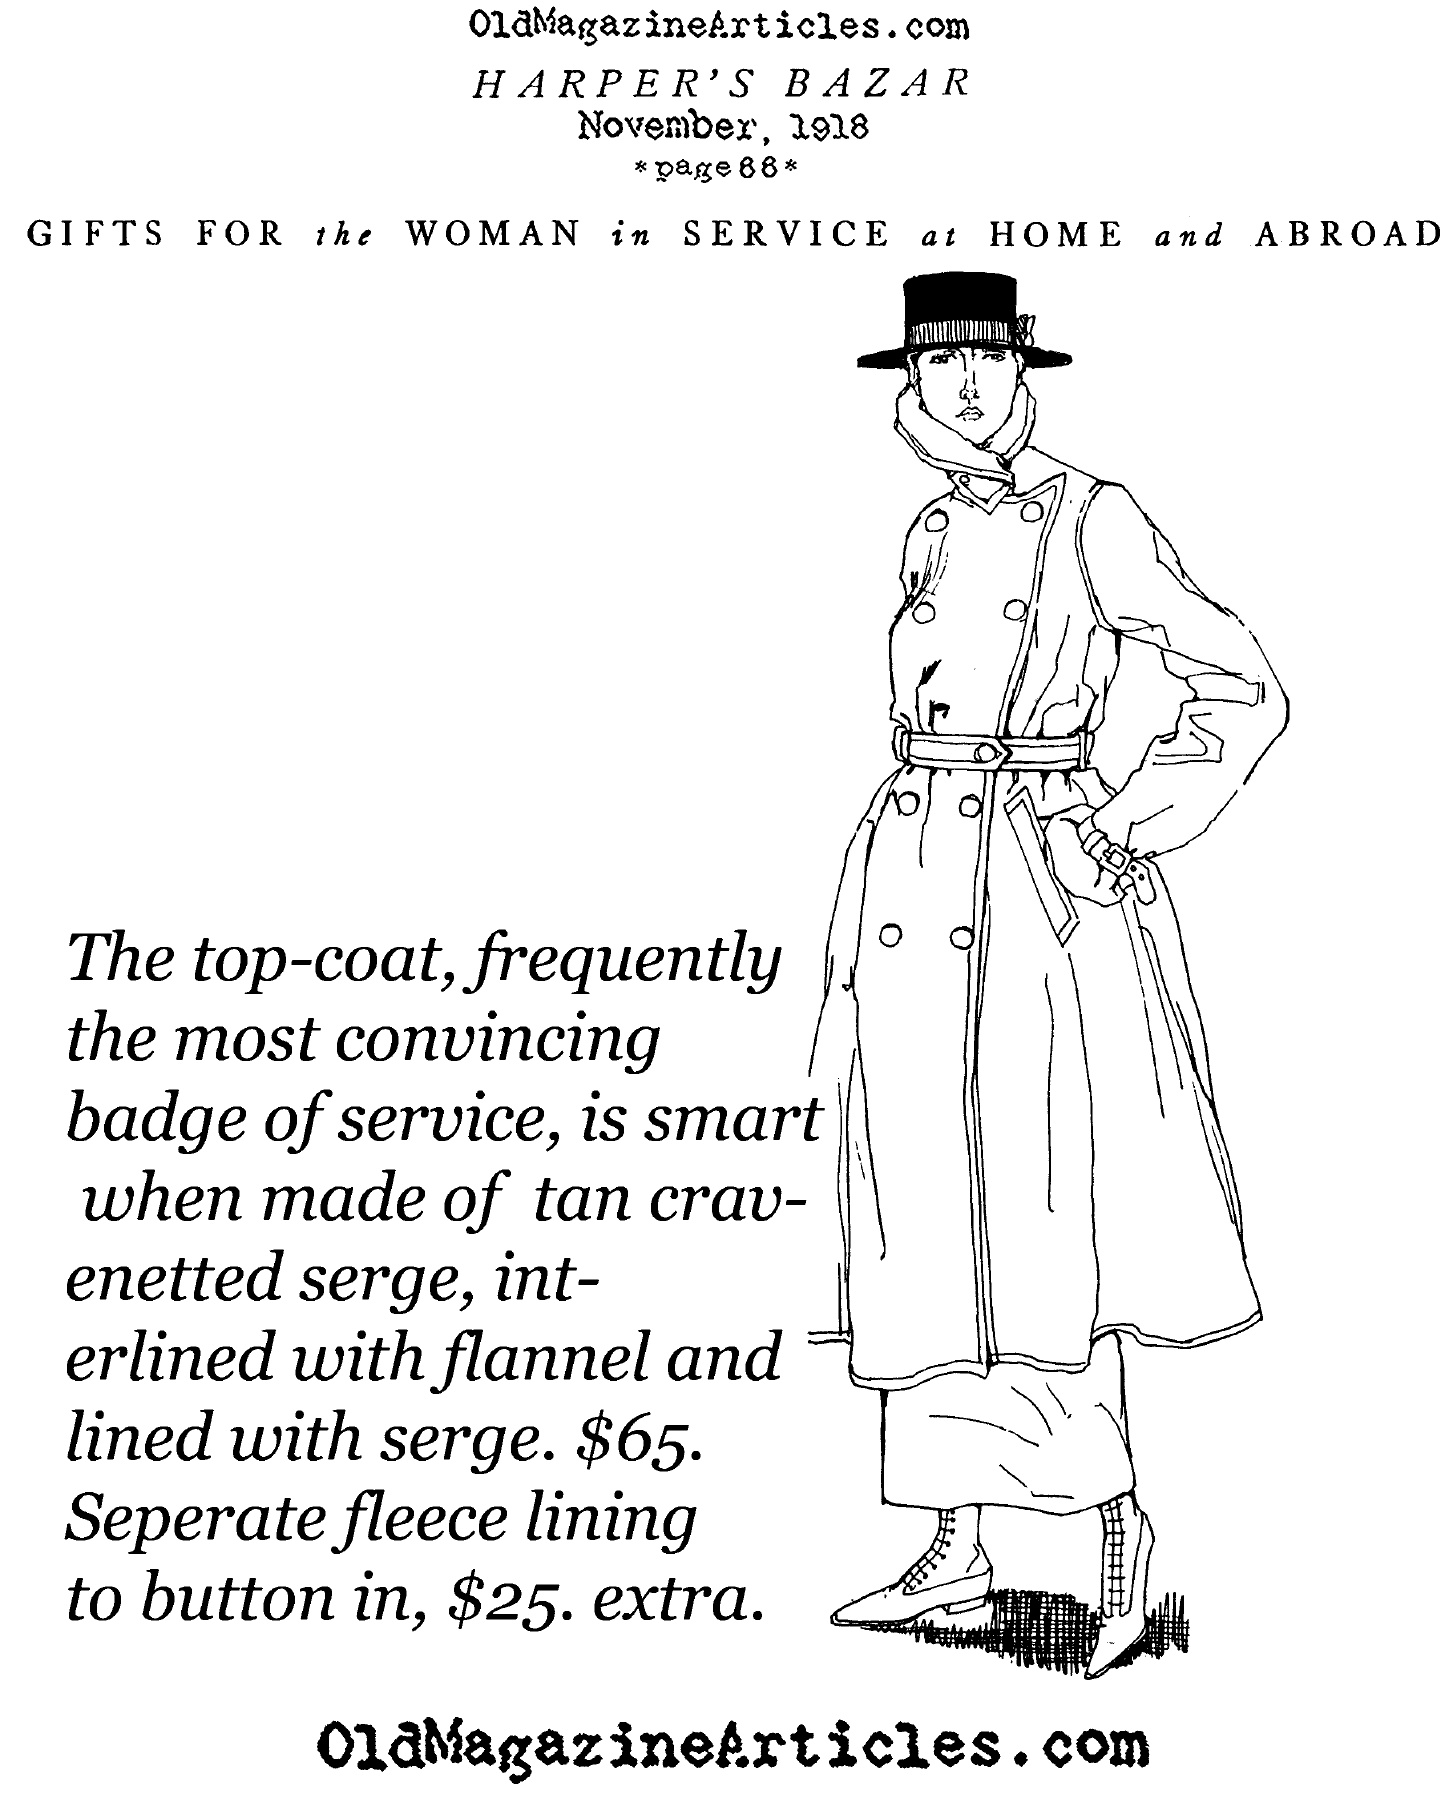 A Trench Coat for the Fashionable Ladies (Harper's Bazaar, 1918)